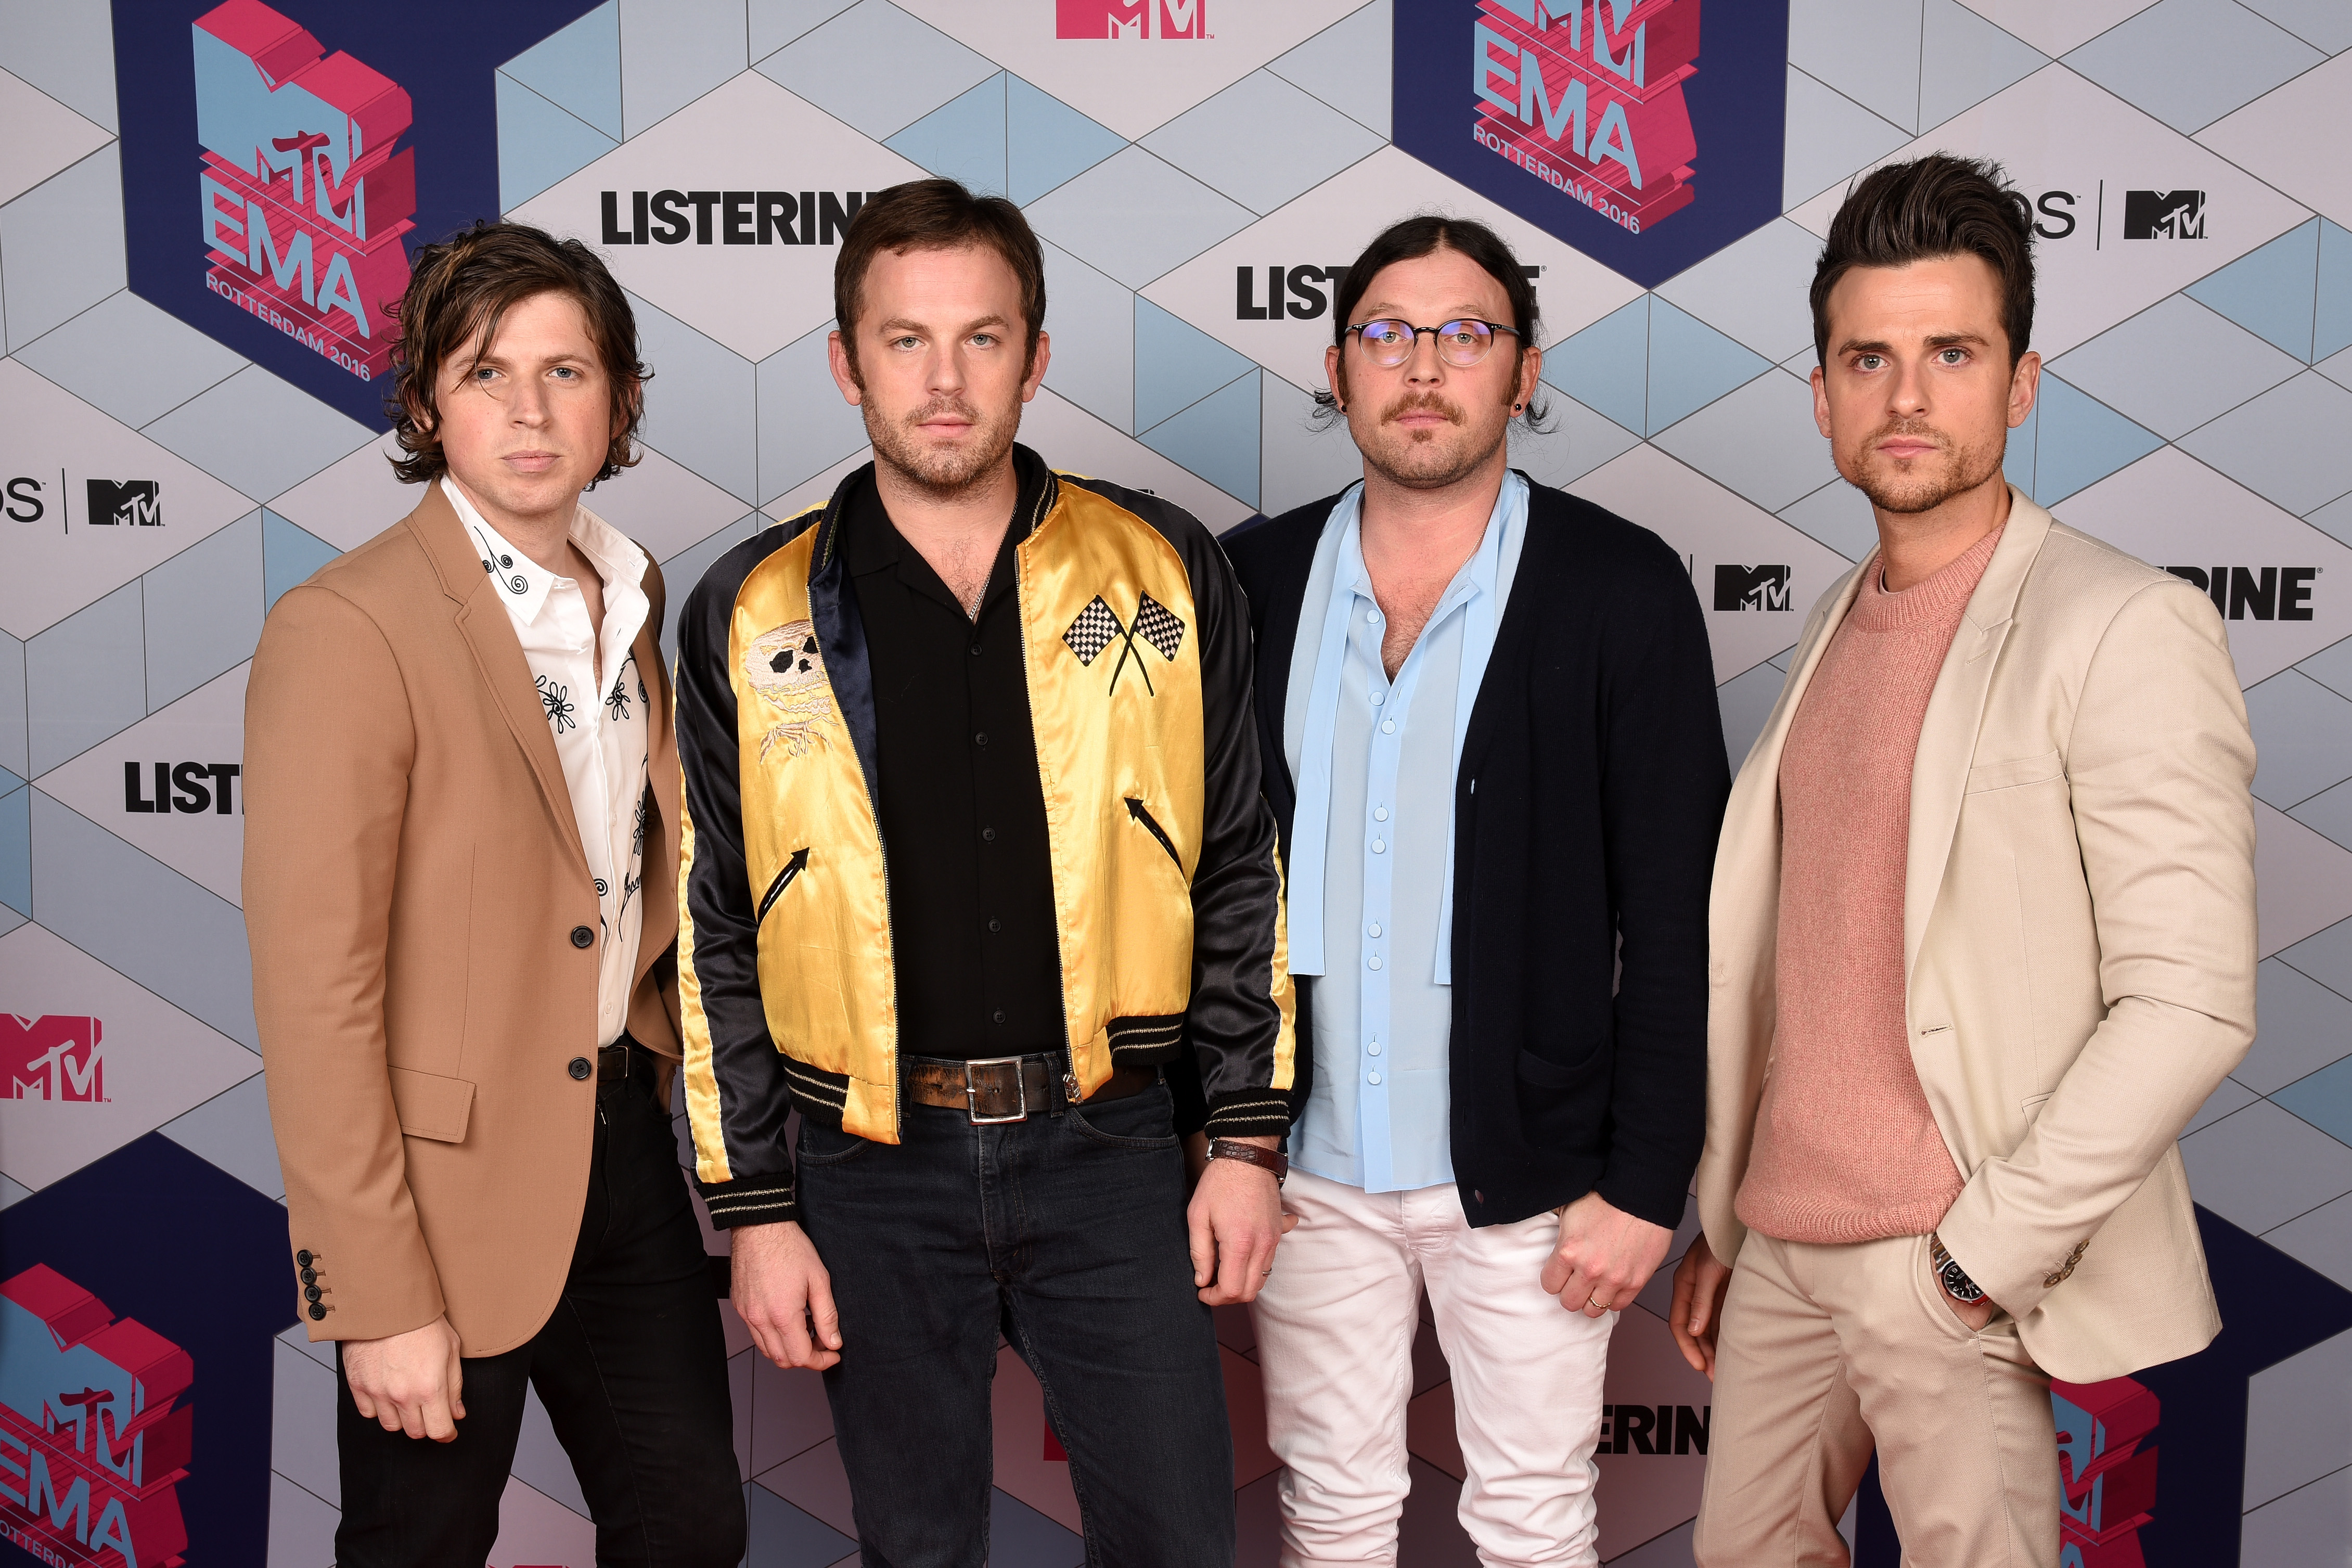 ROTTERDAM, NETHERLANDS - NOVEMBER 06:  (L-R) Matthew Followill, Caleb Followill, Nathan Followill and Jared Followill of Kings of Leon attend the MTV Europe Music Awards 2016 on November 6, 2016 in Rotterdam, Netherlands.  (Photo by Dave Hogan/MTV 2016/Getty Images)